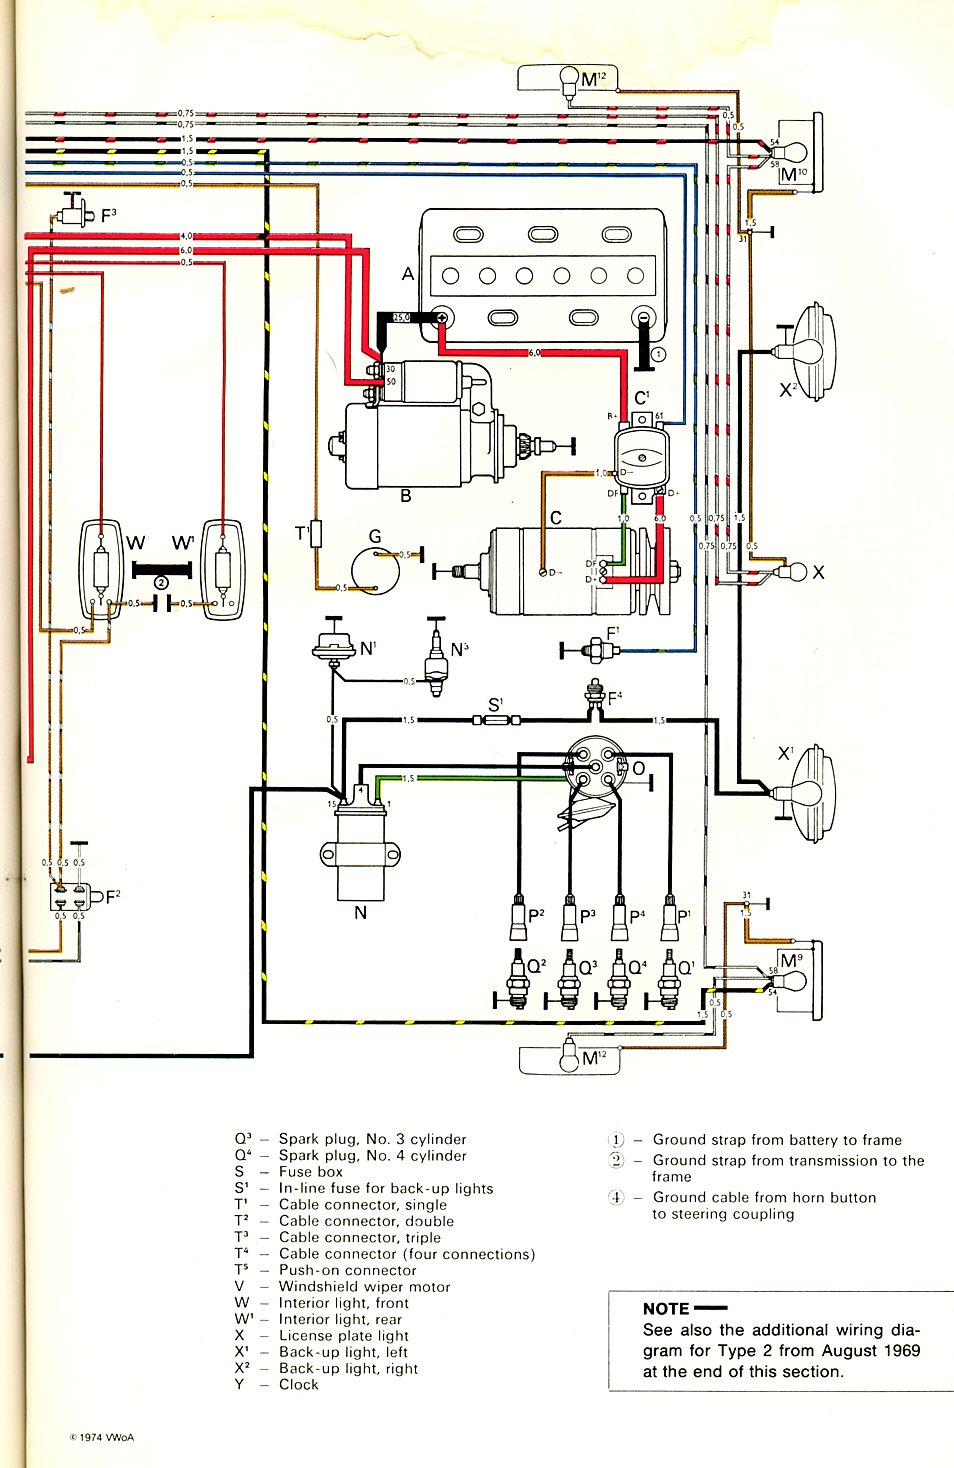 1971 vw alternator wiring diagram thesamba.com :: type 2 wiring diagrams